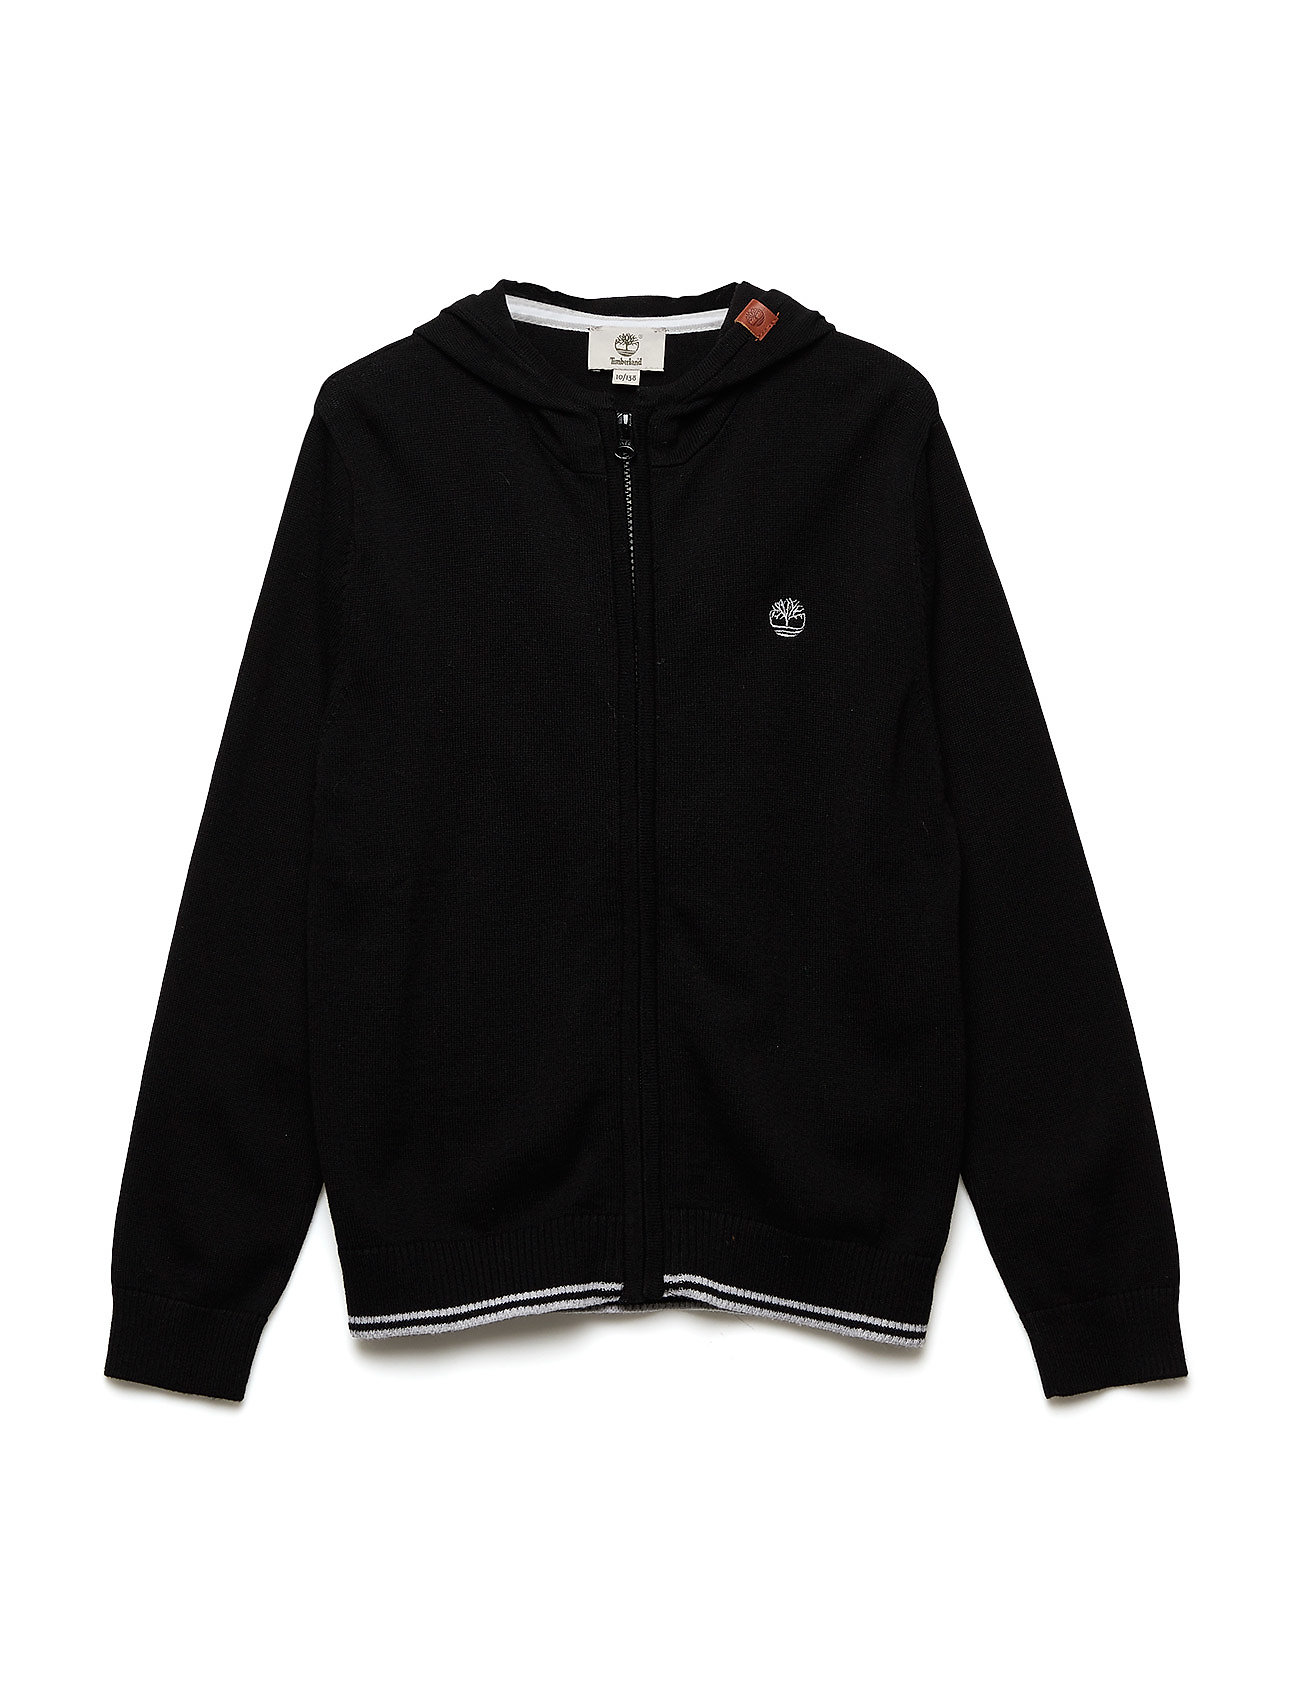 Timberland KNITTED CARDIGAN - BLACK